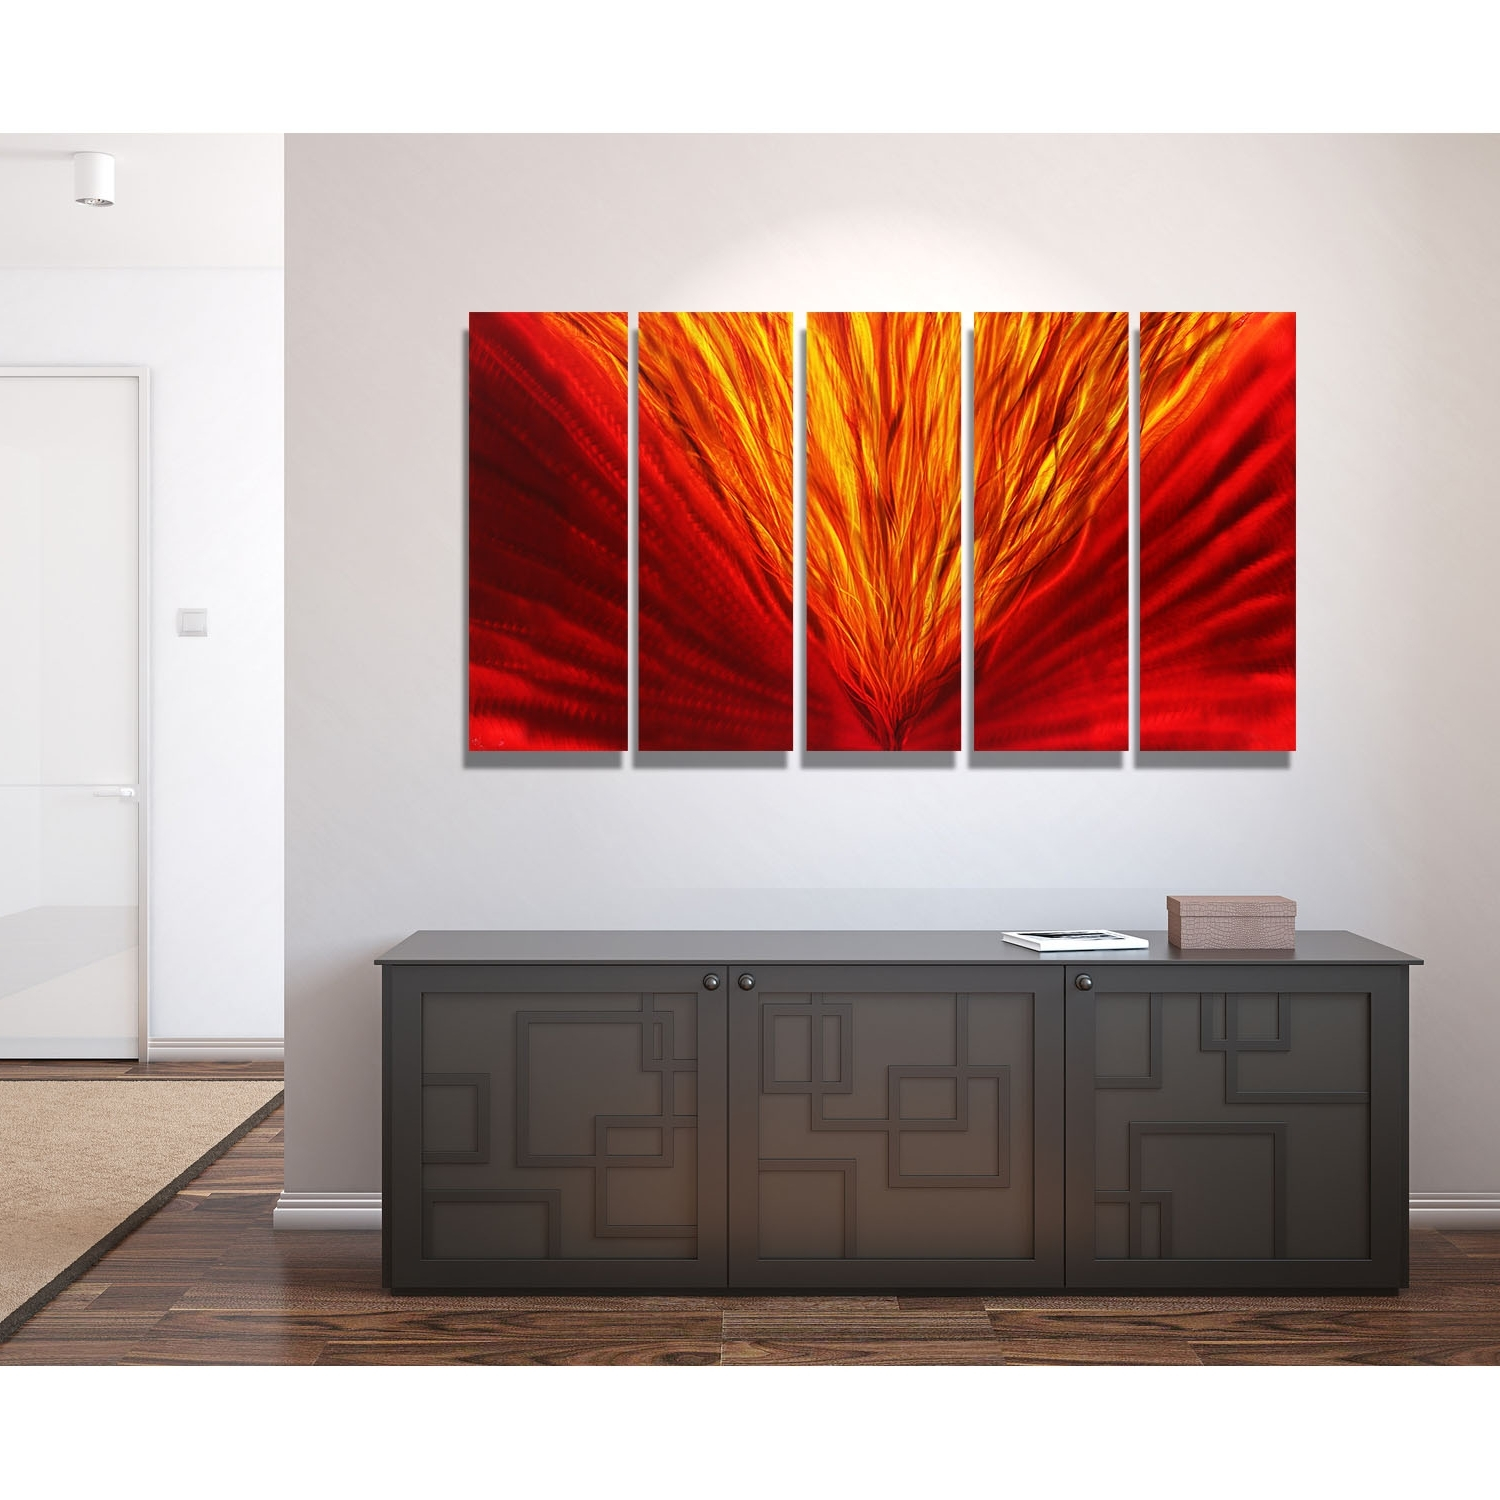 Famous Blaze – Red And Gold Metal Wall Art – 5 Panel Wall Decorjon Within 5 Panel Wall Art (View 14 of 15)